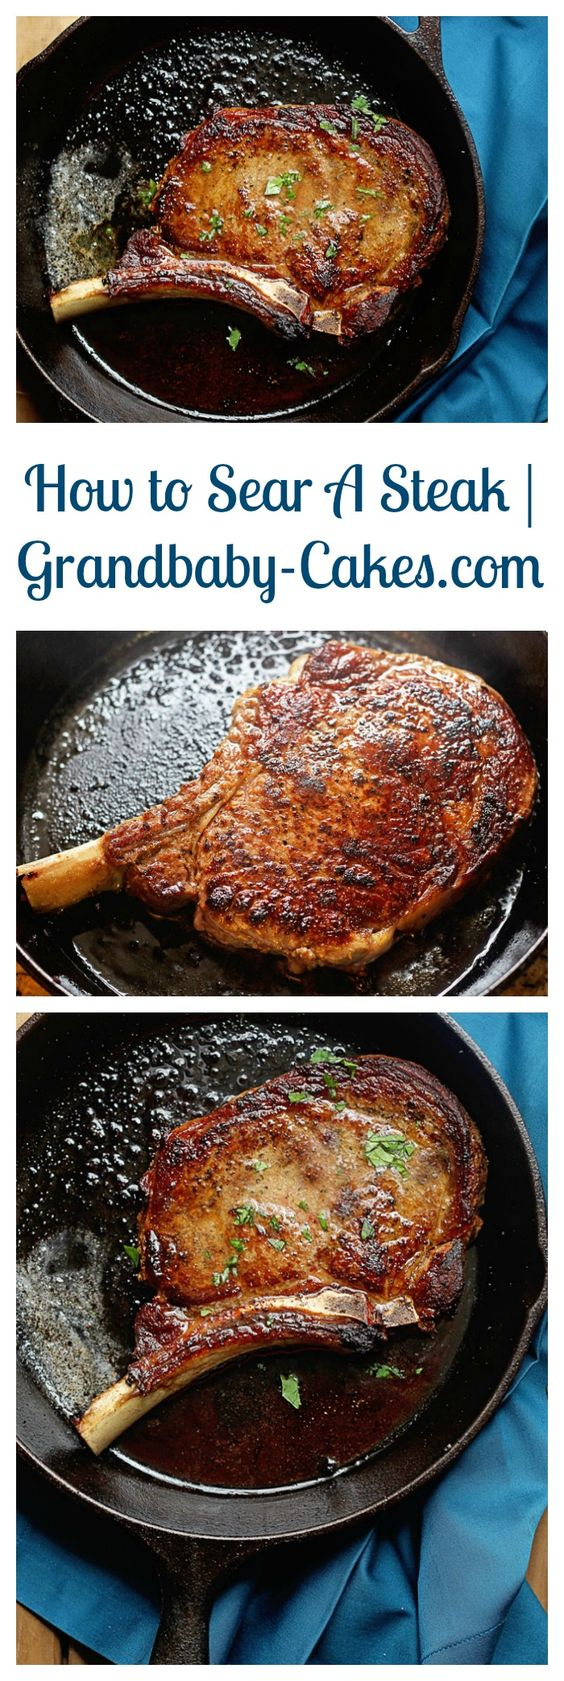 Learn an Easy and Delicious Way to Sear a Steak - Forget expensive steakhouses! You can make great steak at home! | Grandbaby-Cakes.com